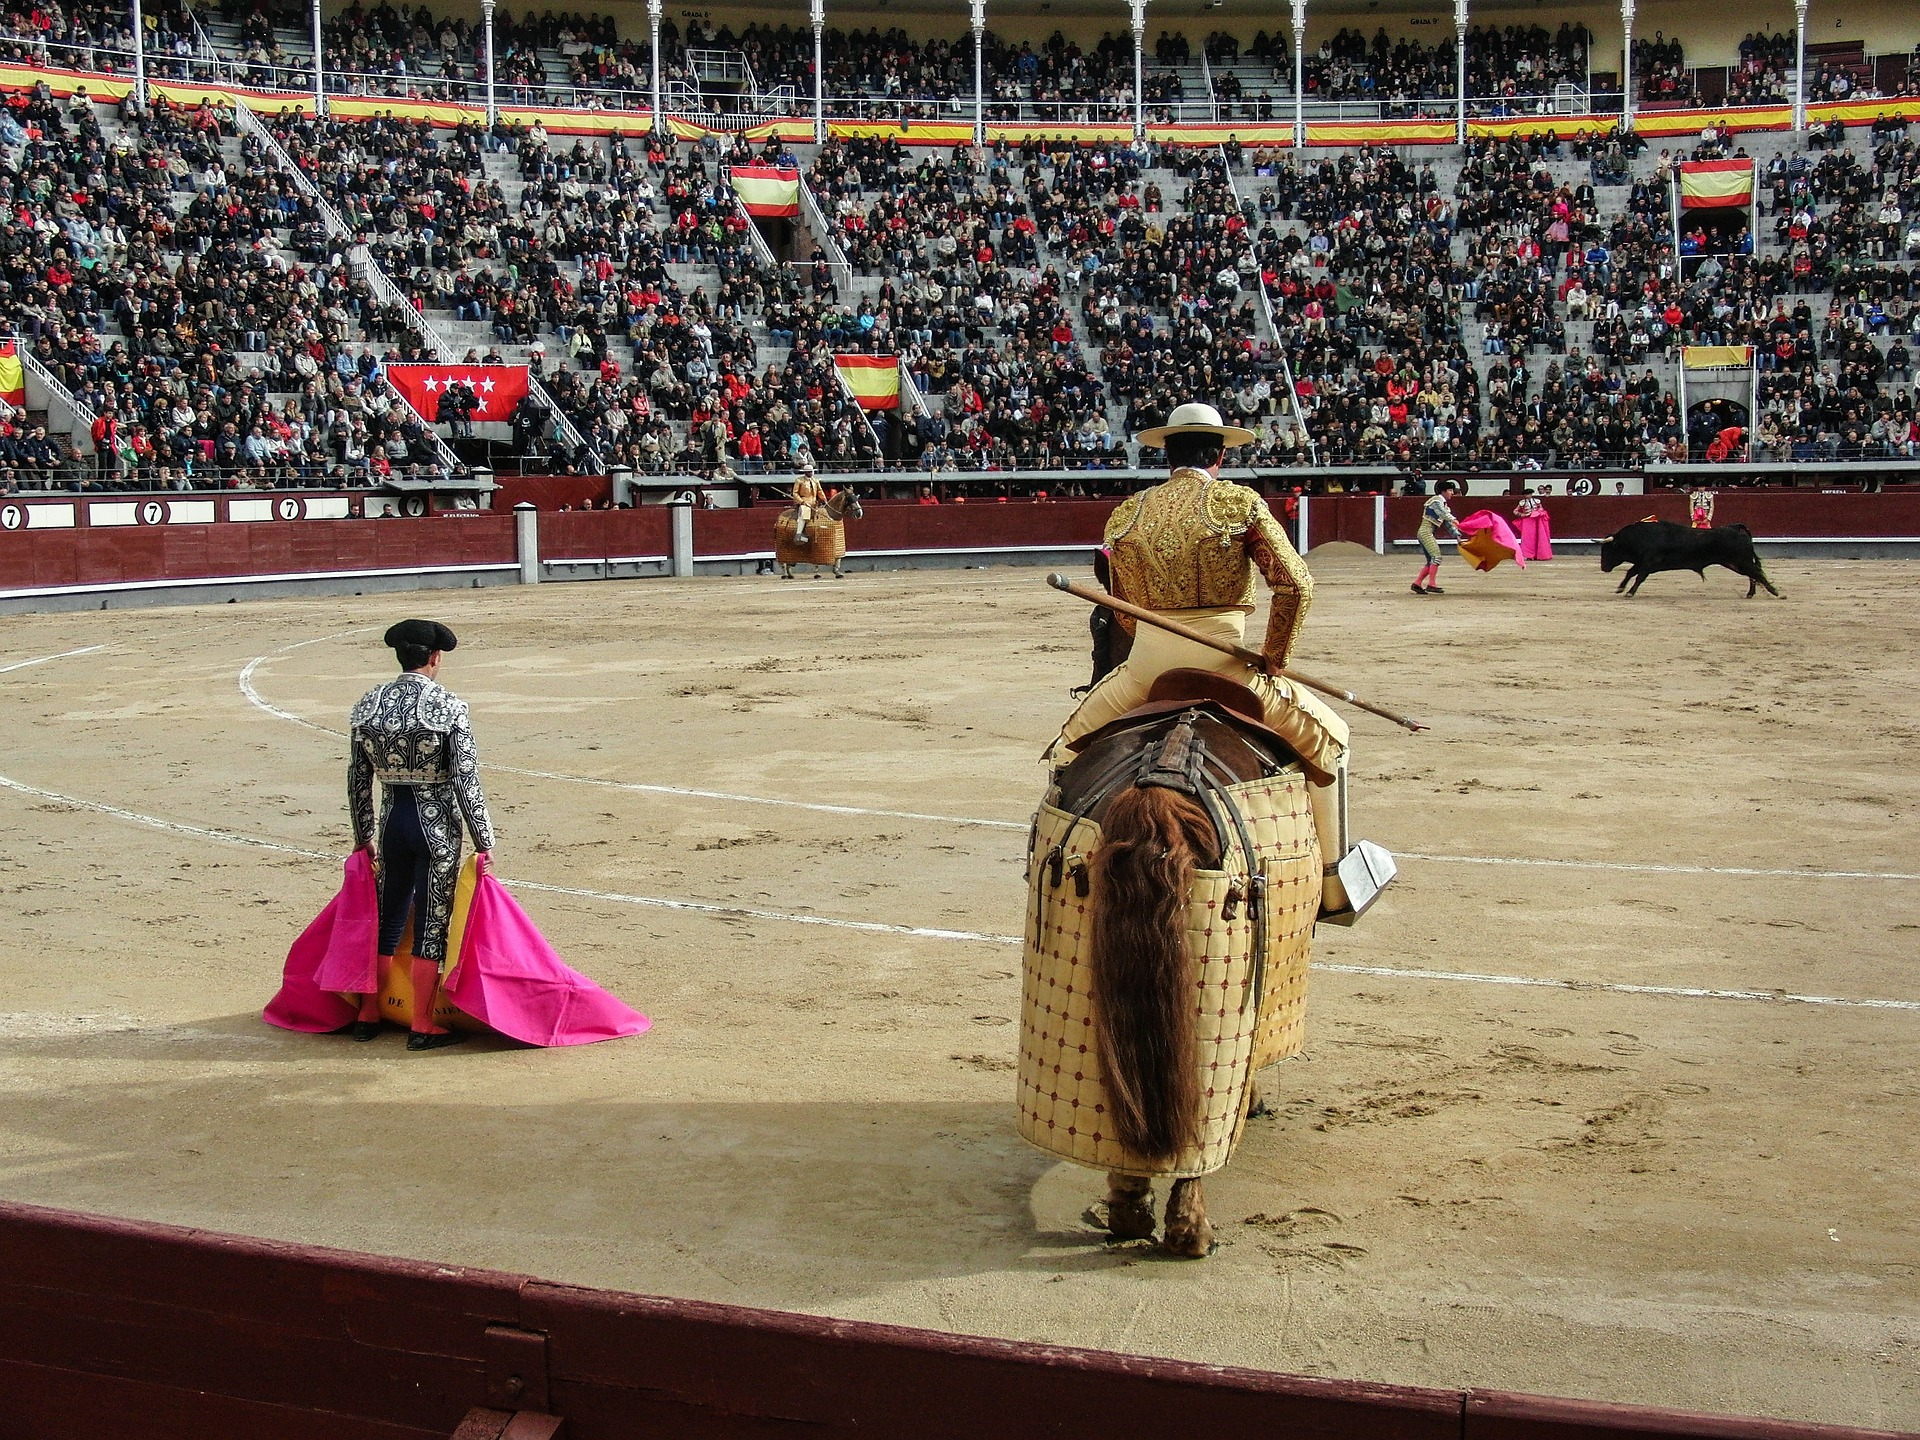 Bullfighting should be a thing of the past